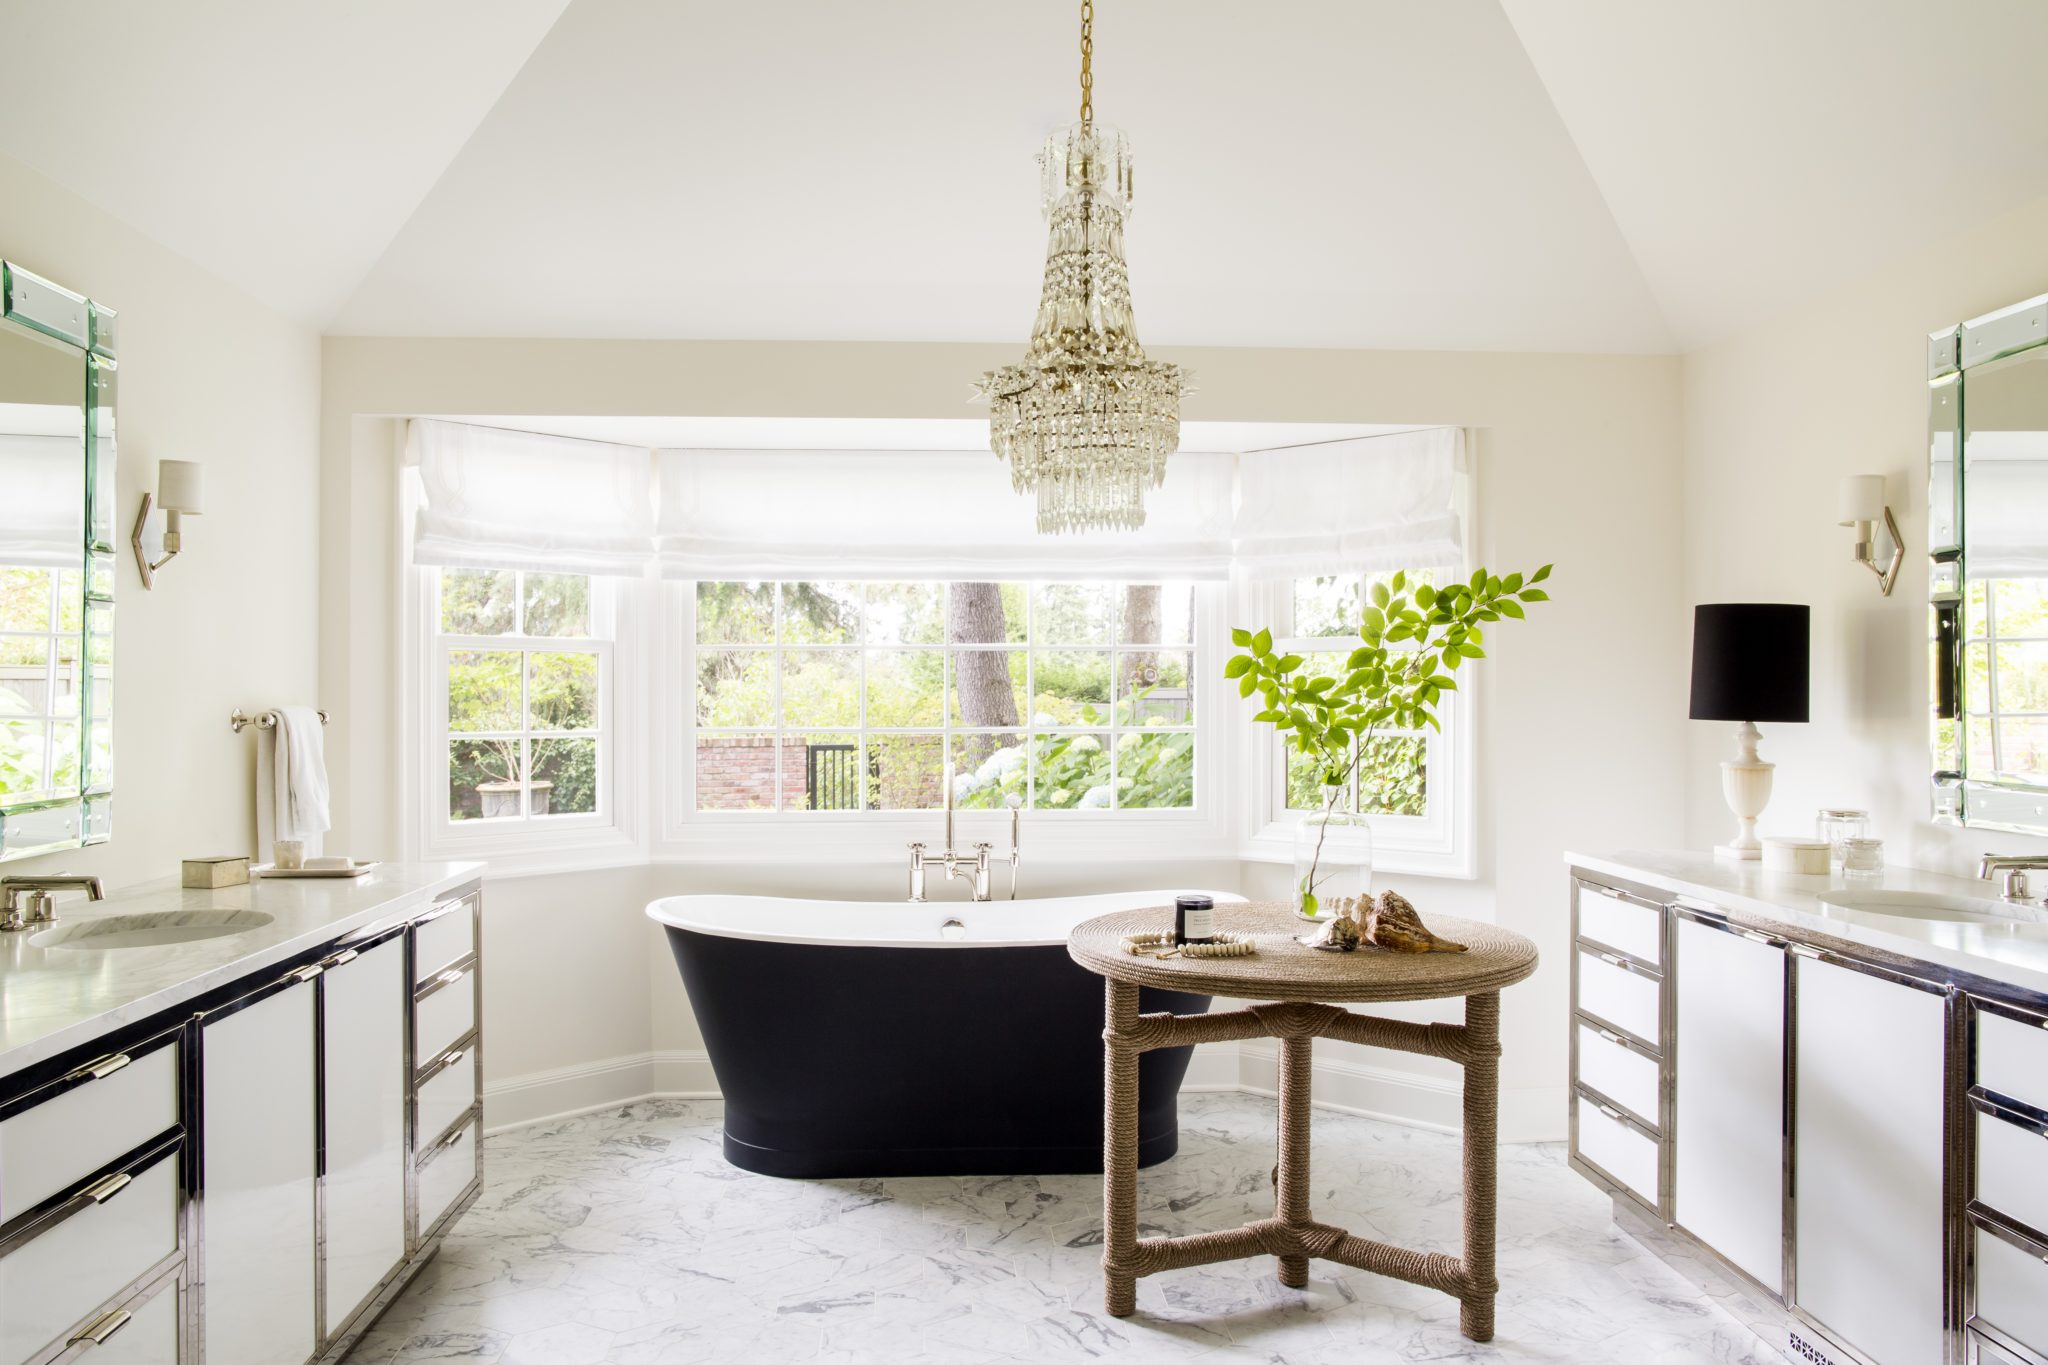 Seattle master bath with Afriba side table by Christian Astuguevielle. By Nate Berkus Associates